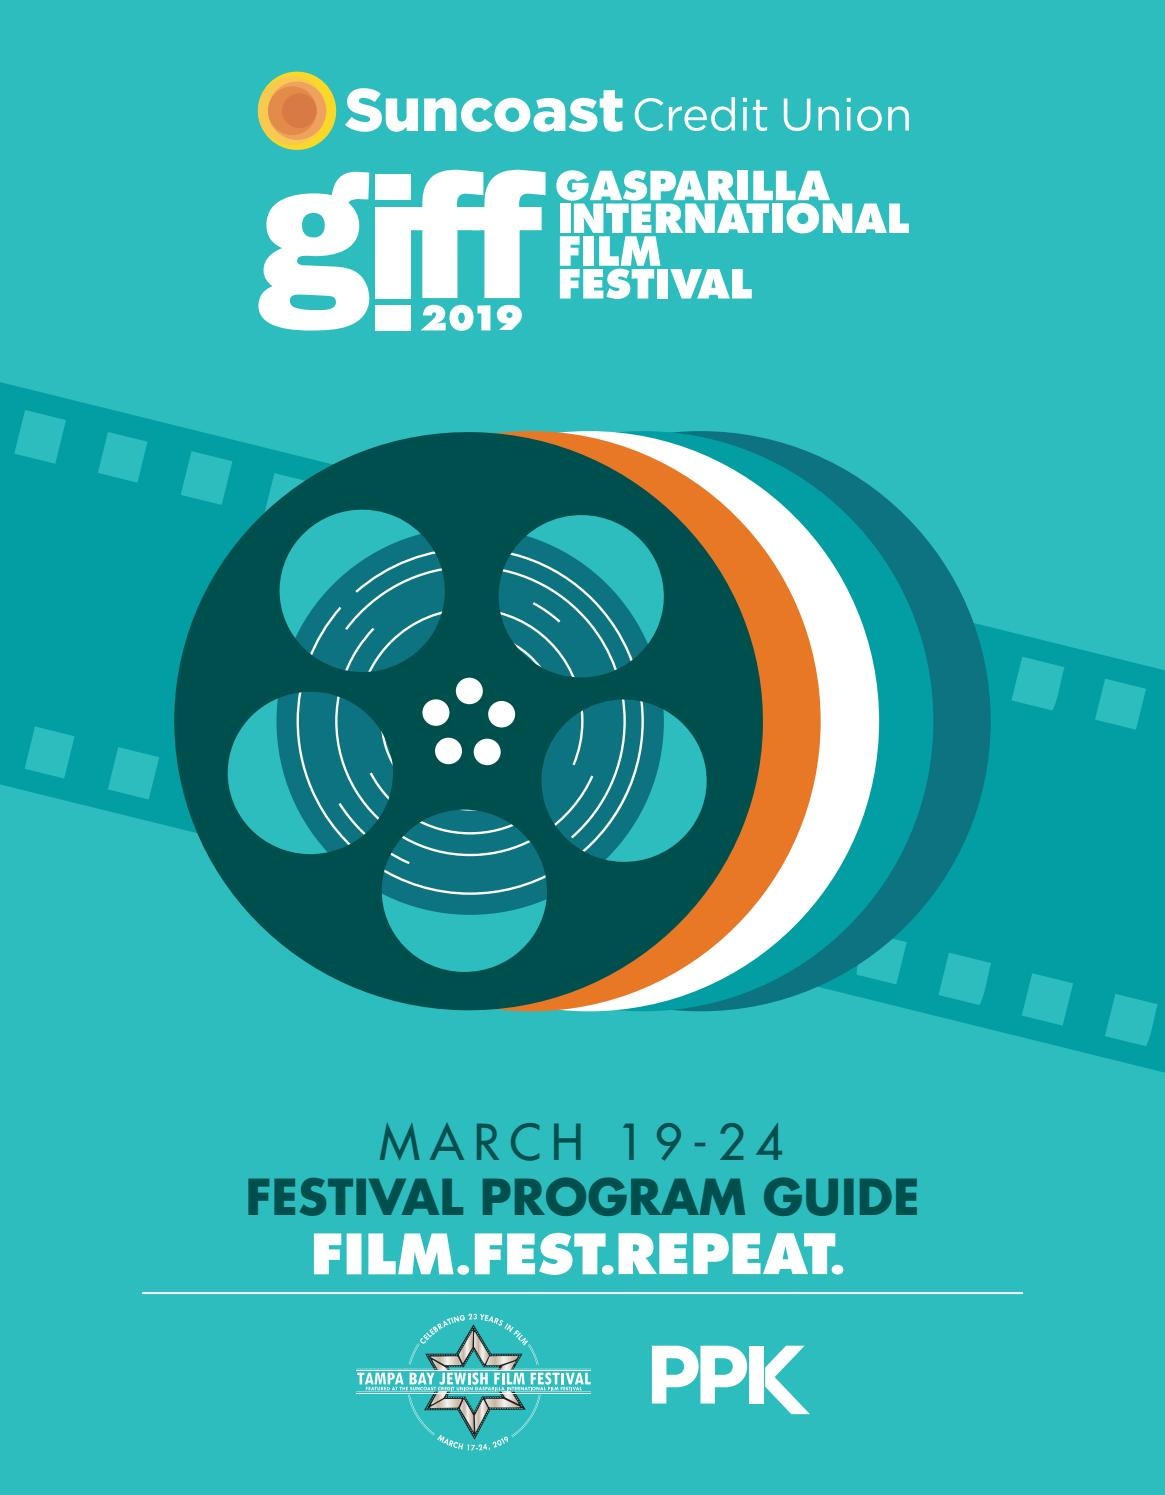 2019 Suncoast Credit Union Gasparilla Int'l Film Festival PROGRAM